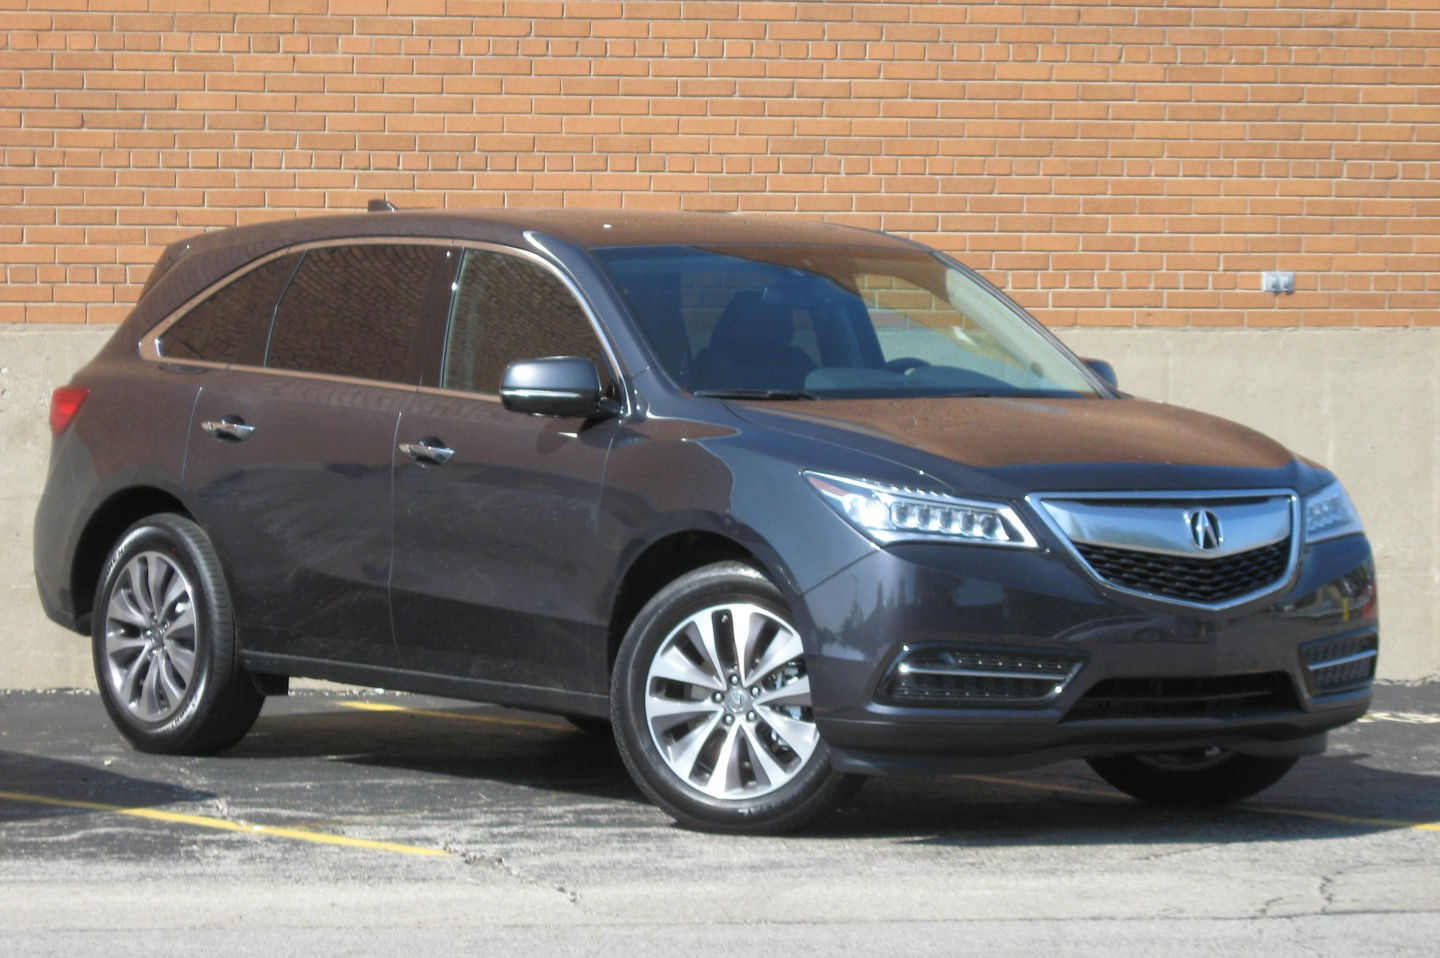 Test Drive: 2014 Acura MDX - The Daily Drive | Consumer Guide® The Daily  Drive | Consumer Guide®